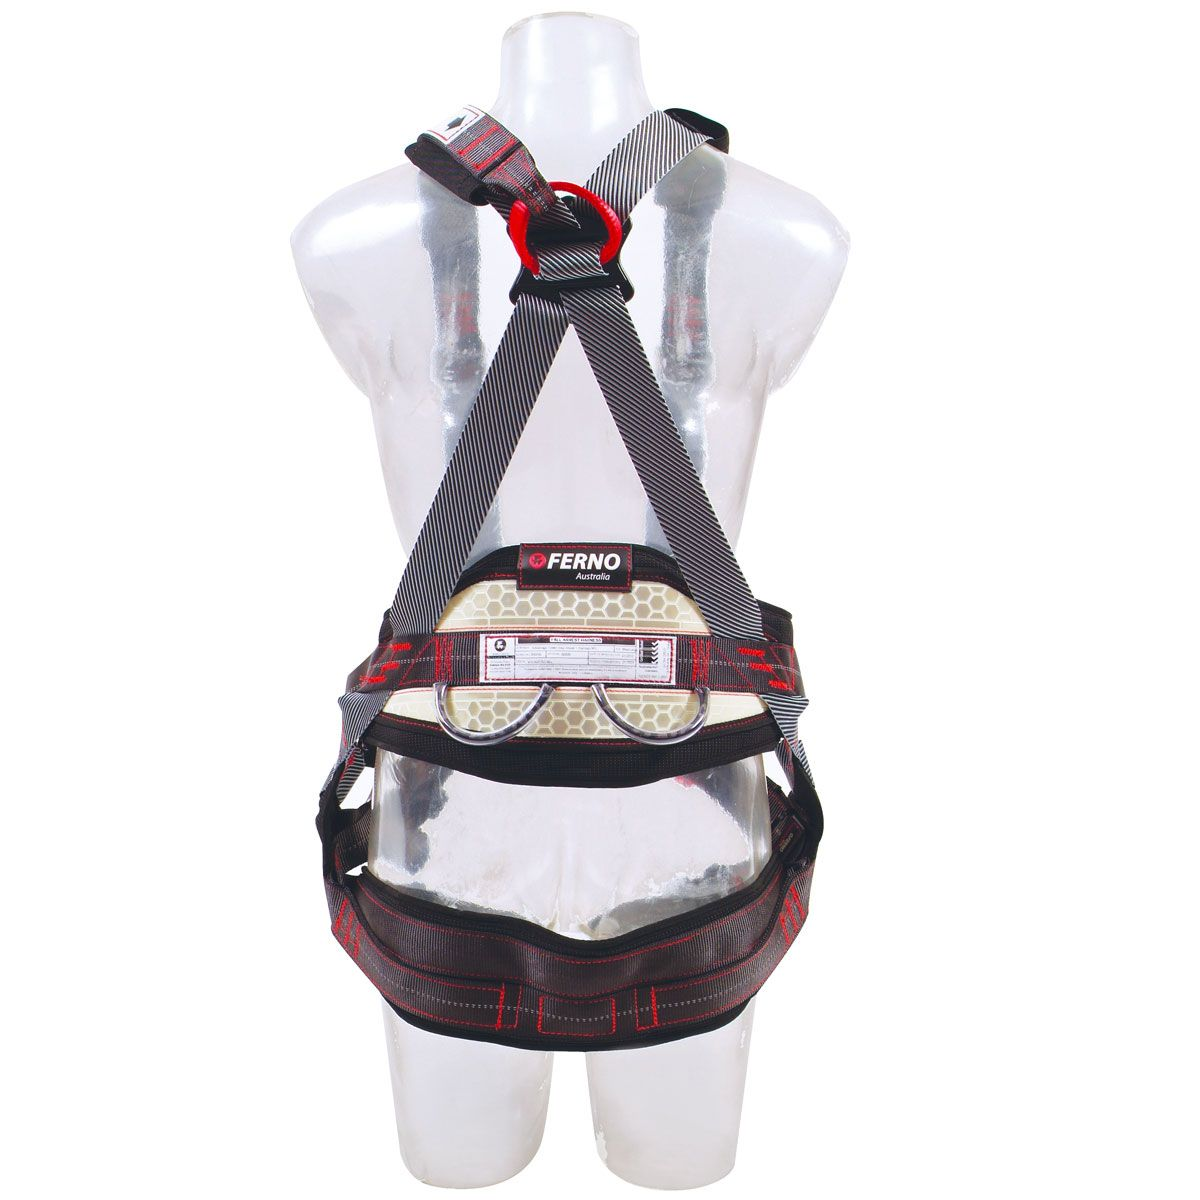 Ferno Advantage Pro Tower Harness